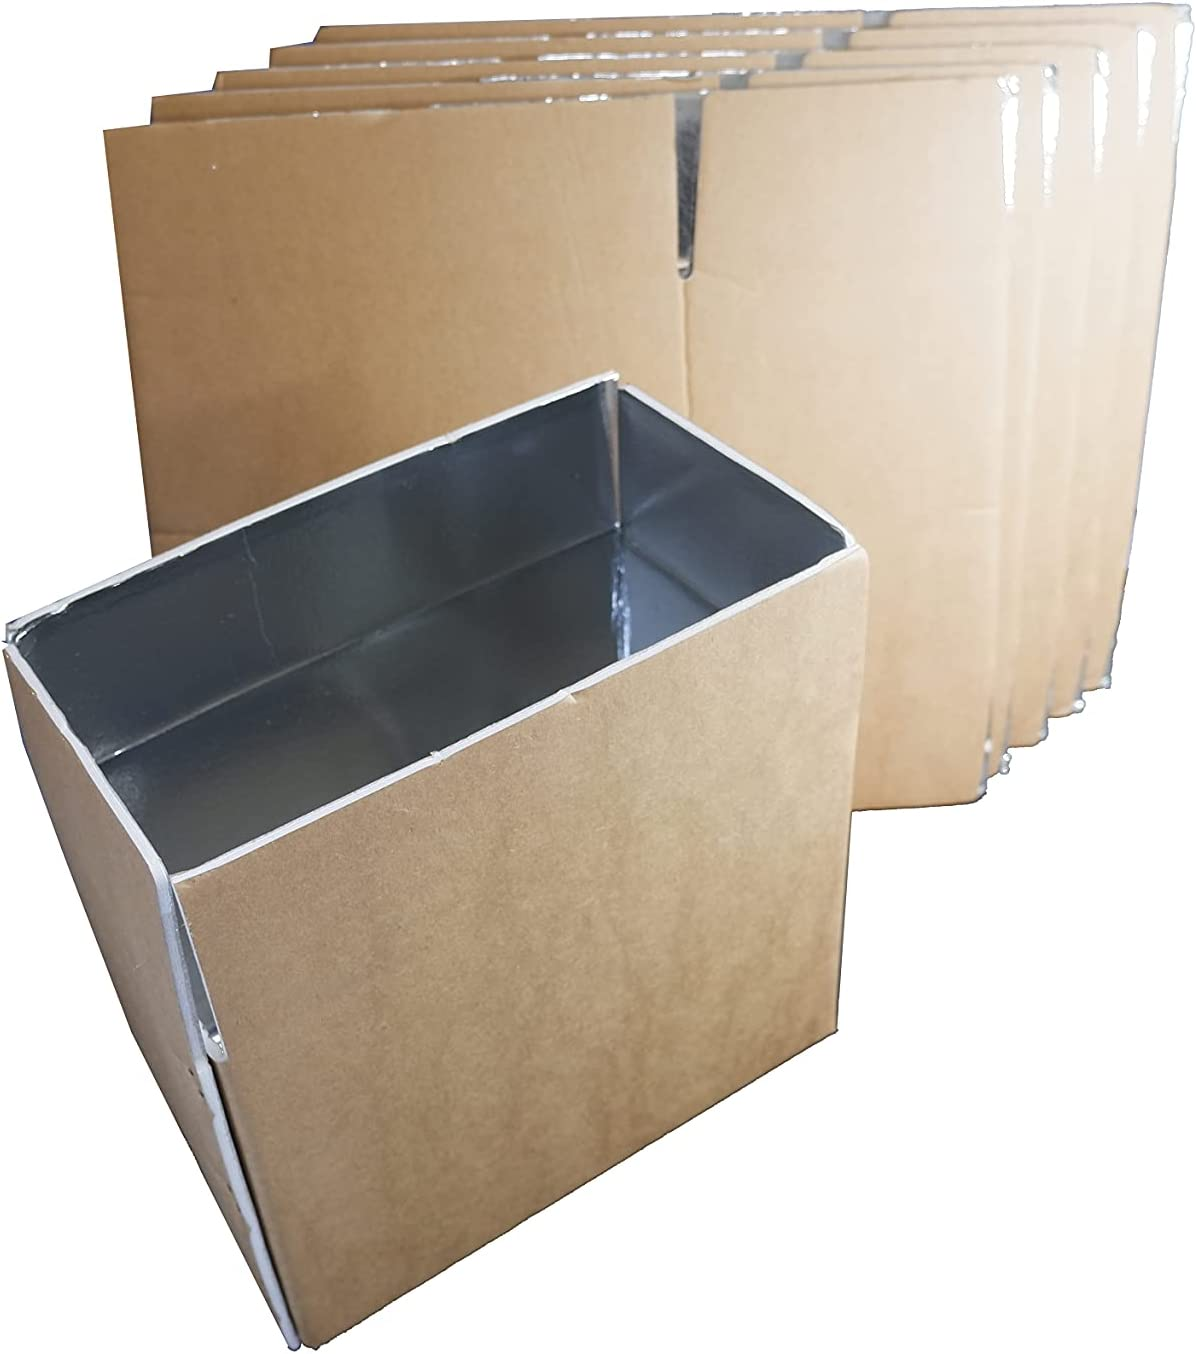 ARCTECH insulated shipping foam Aluminum foil box X 5packs , middle size useful space 10X5.7X7'' Insulated delivery mail mailing carton for fresh, frozen sea food, milk, meat.